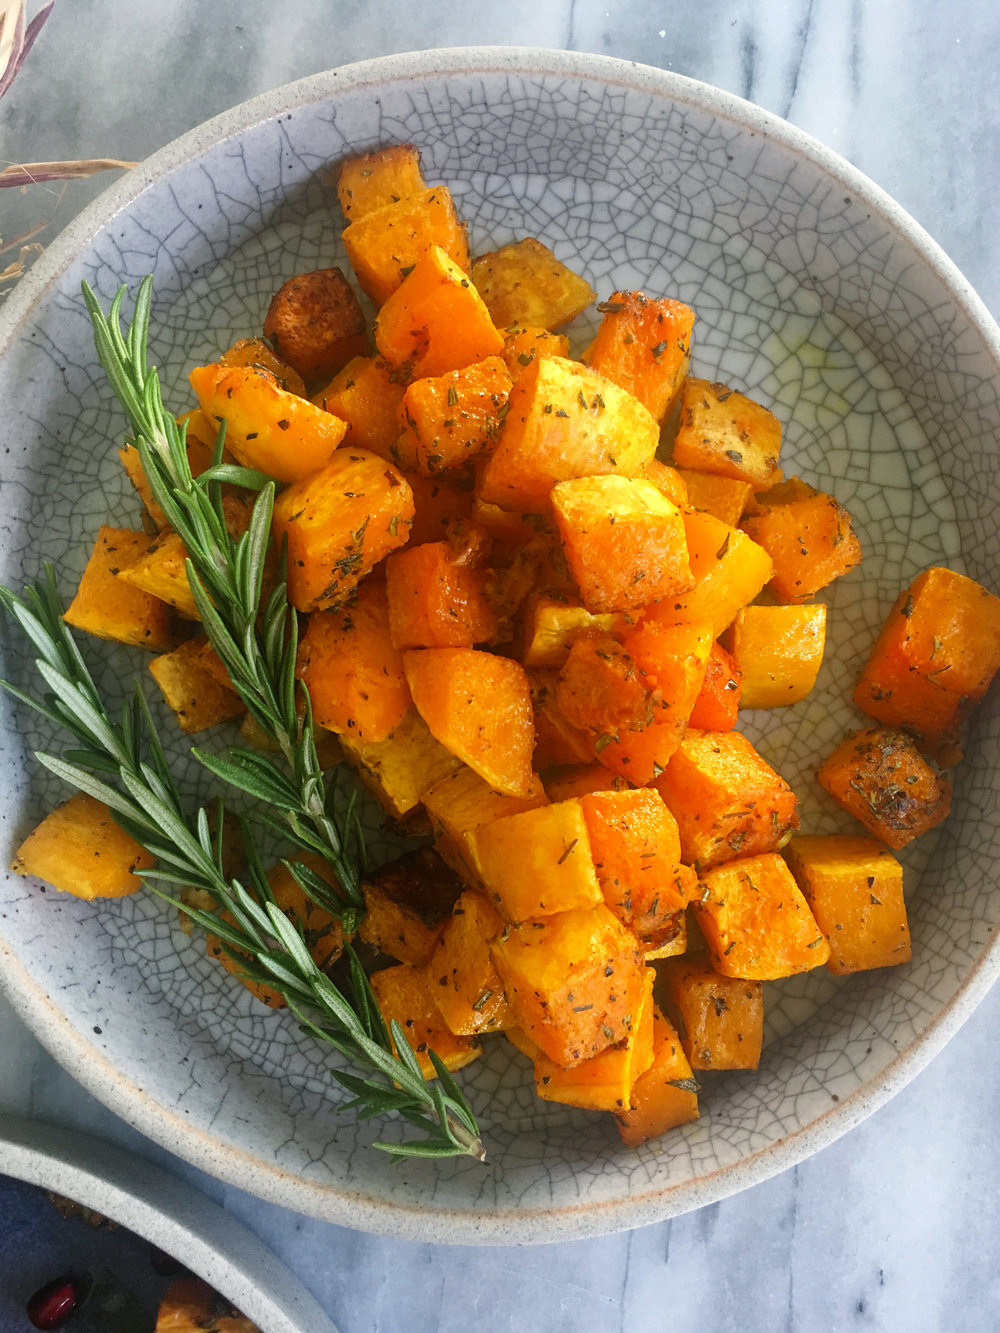 SAVORY: Roasted butternut squash baked with fresh rosemary, whole garlic cloves, and indian spice.